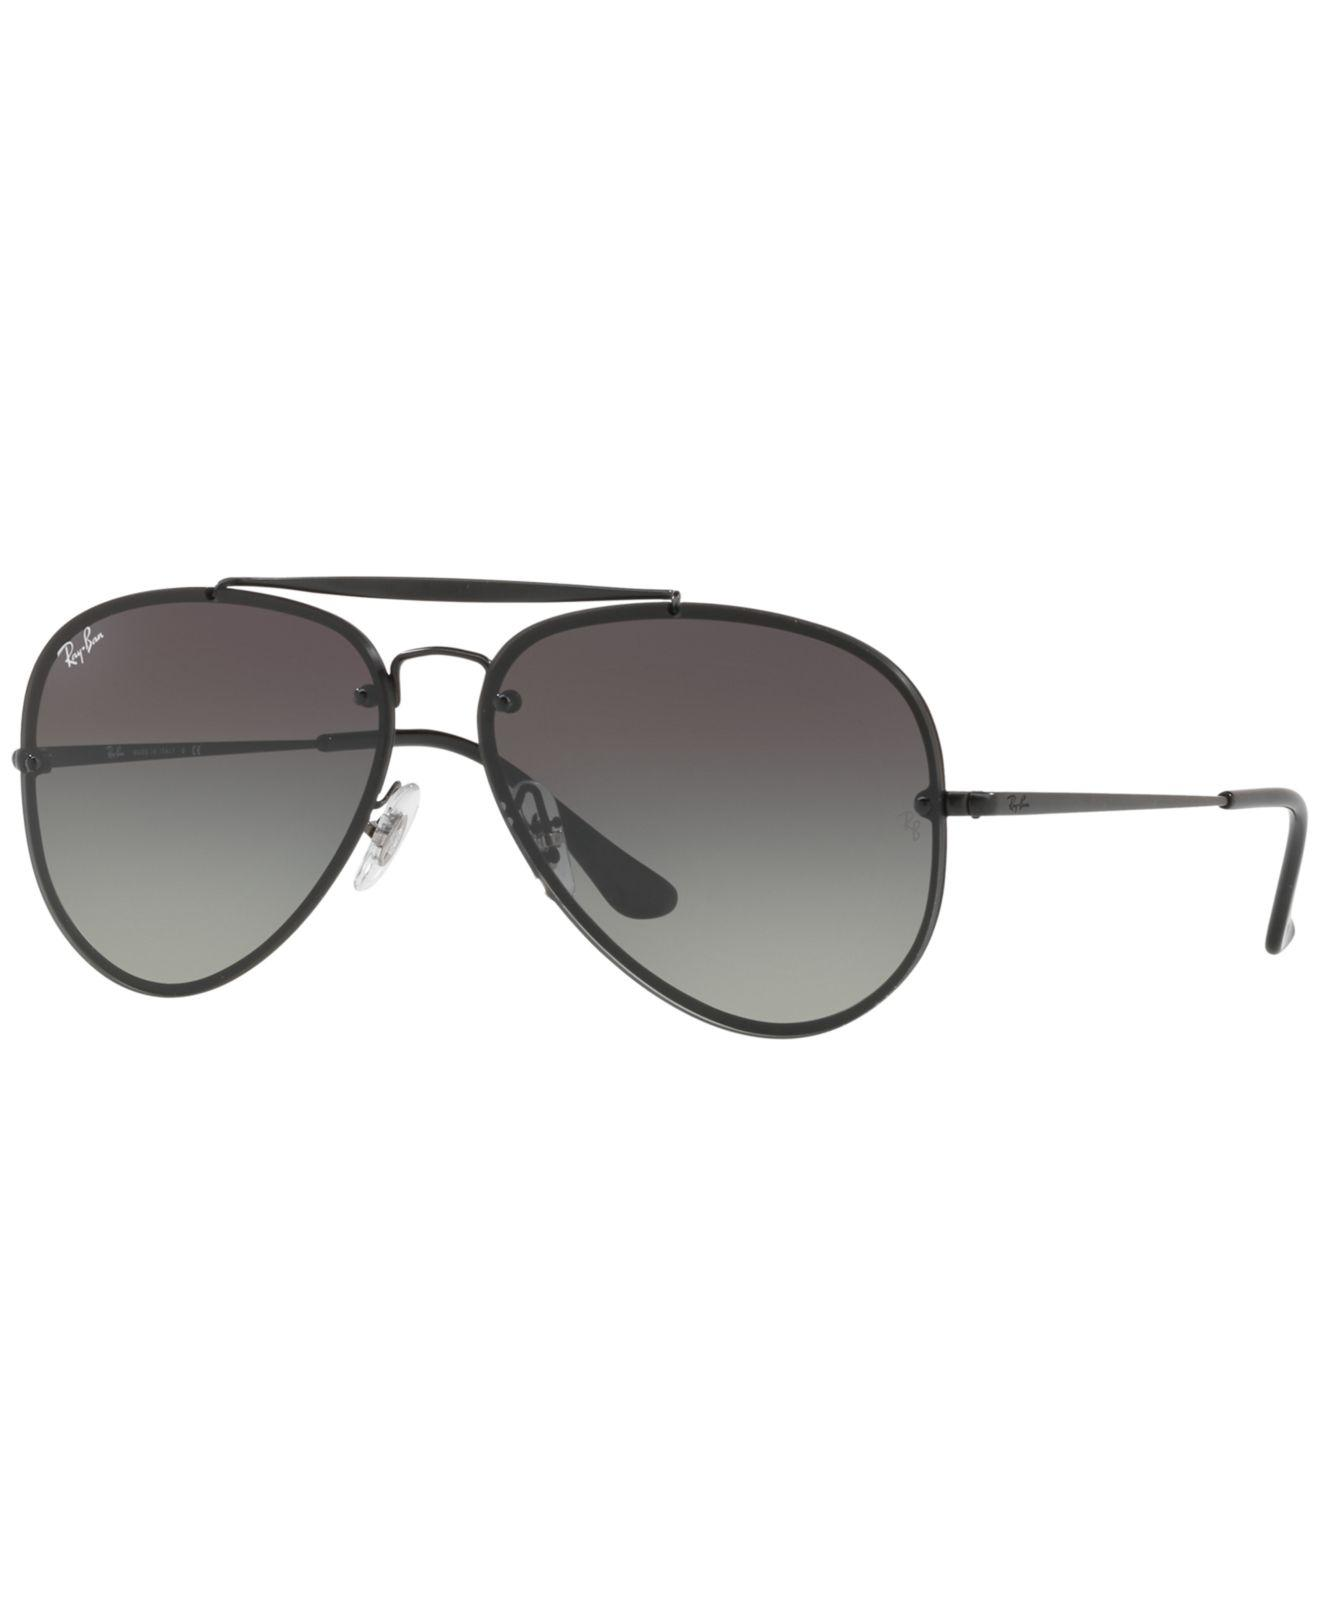 6661e0a266b43 Ray-Ban Rb3584 Aviator Sunglasses in Black for Men - Lyst